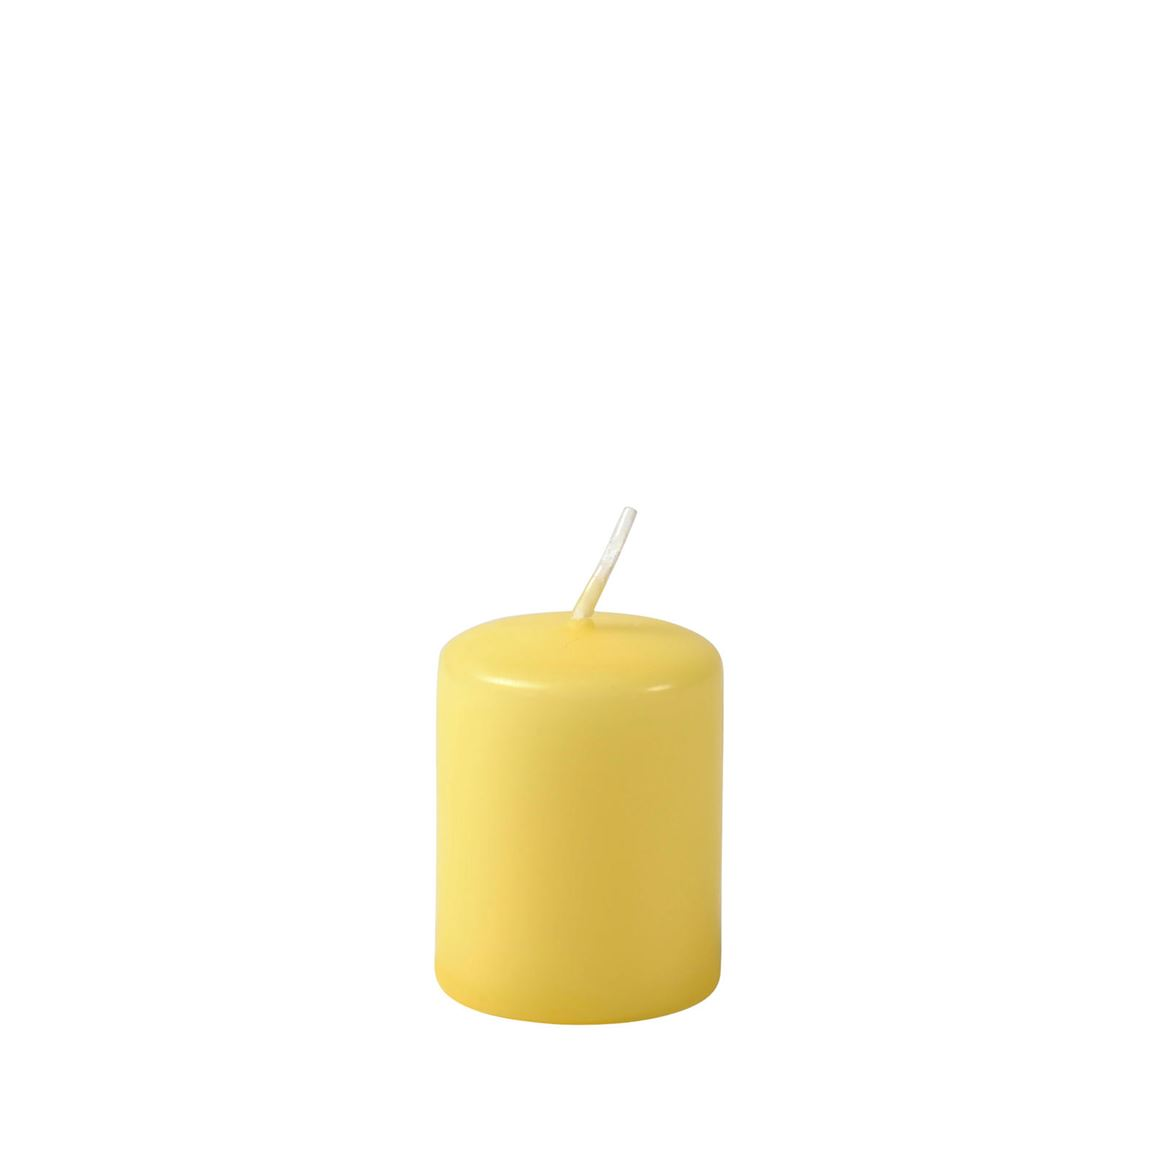 CILINDRO Bougie cylindre jaune clair H 5 cm; Ø 4 cm_cilindro-bougie-cylindre-jaune-clair-h-5-cm;-ø-4-cm